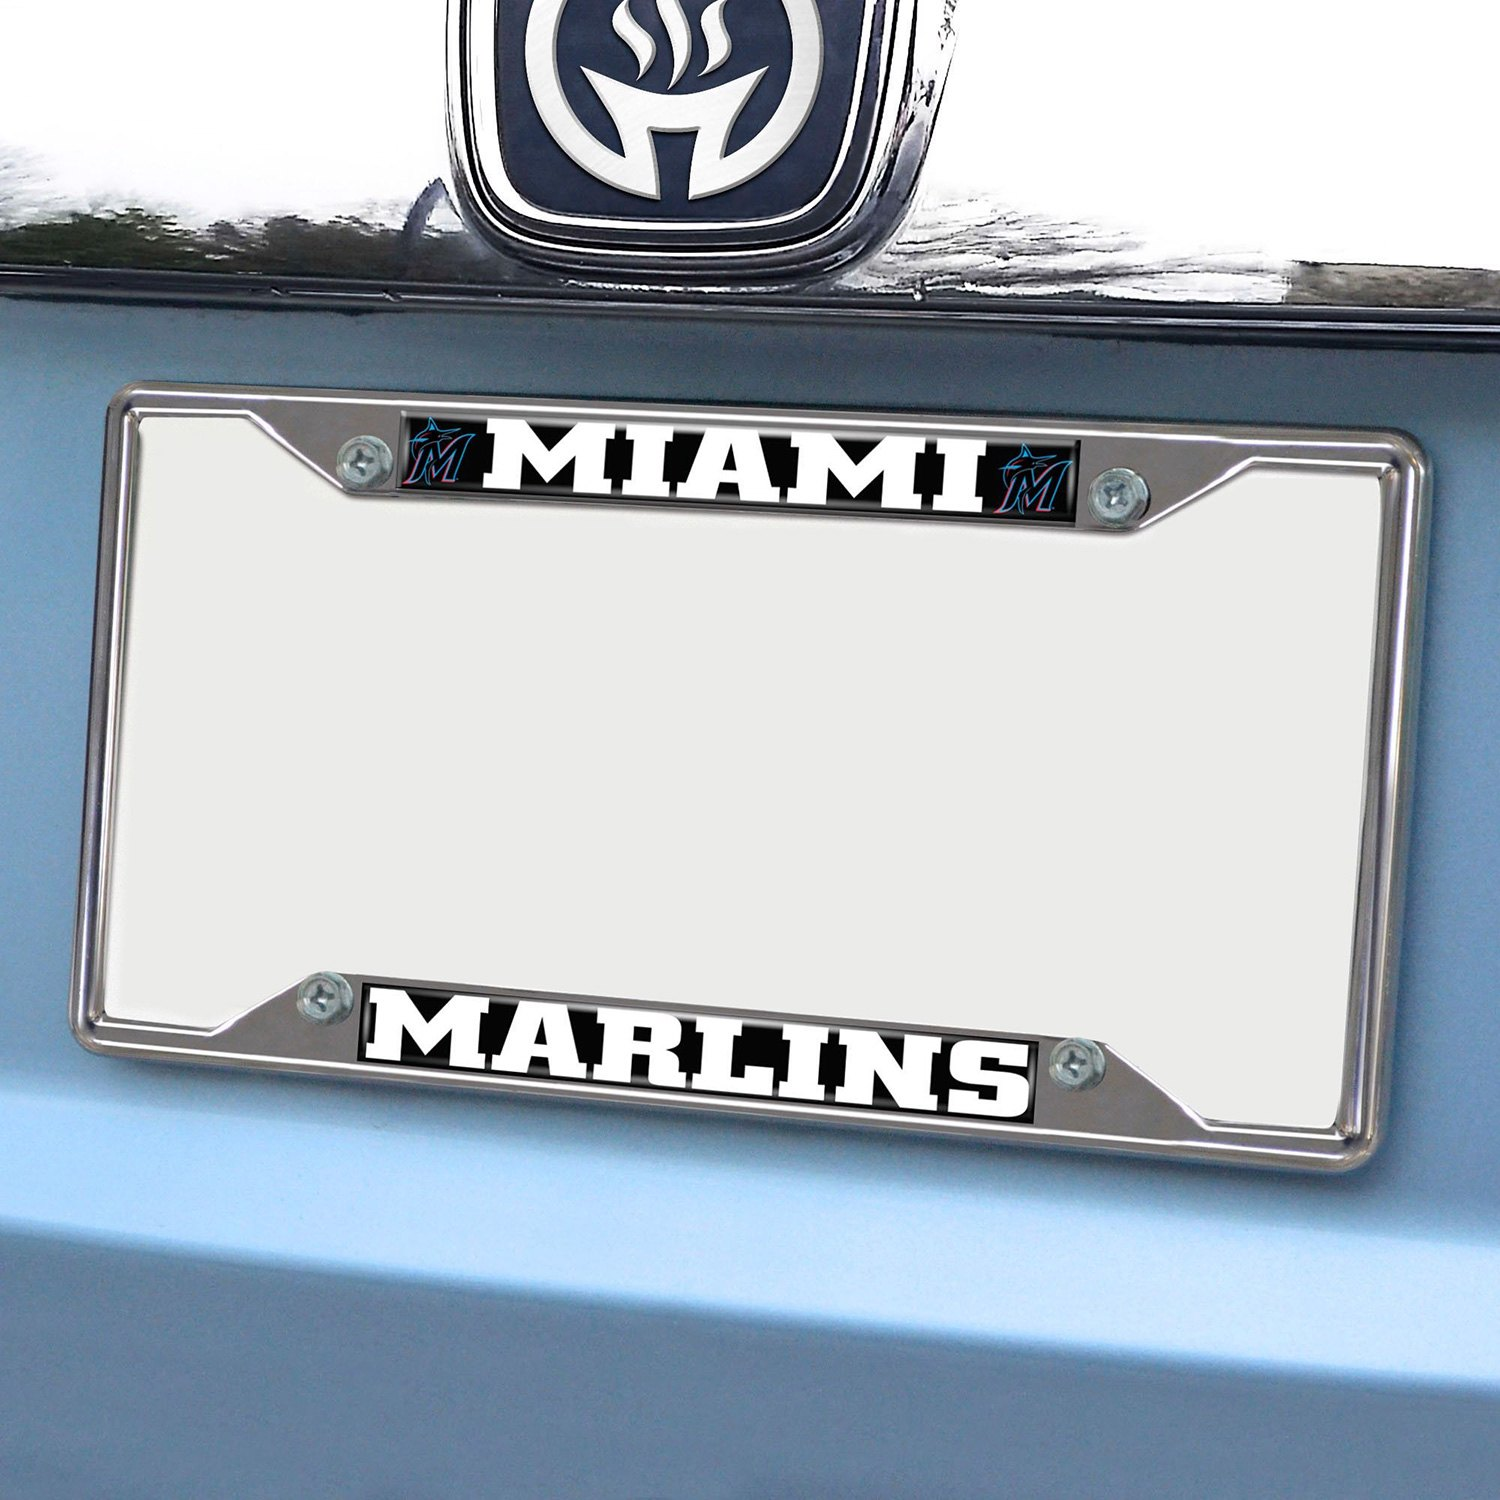 Fanmats 174 26627 Sport Mlb Chrome License Plate Frame With